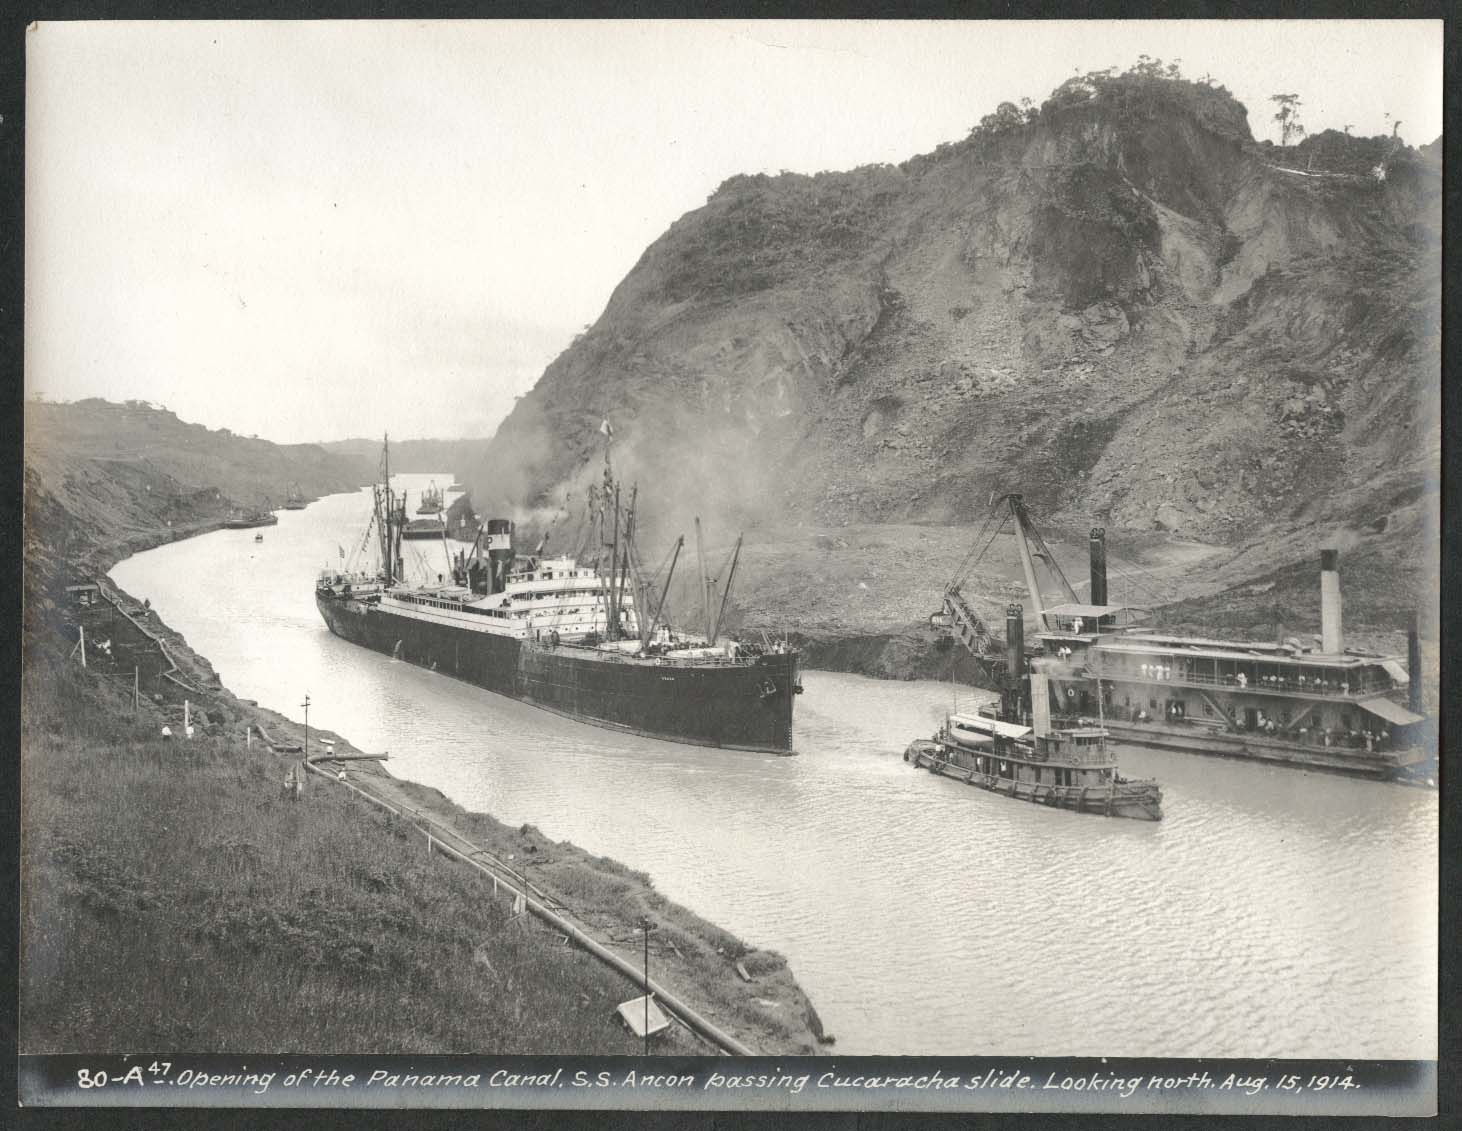 Image for Panama Canal photo 1914 Opening of canal S S Ancon passes Cucaracha slide